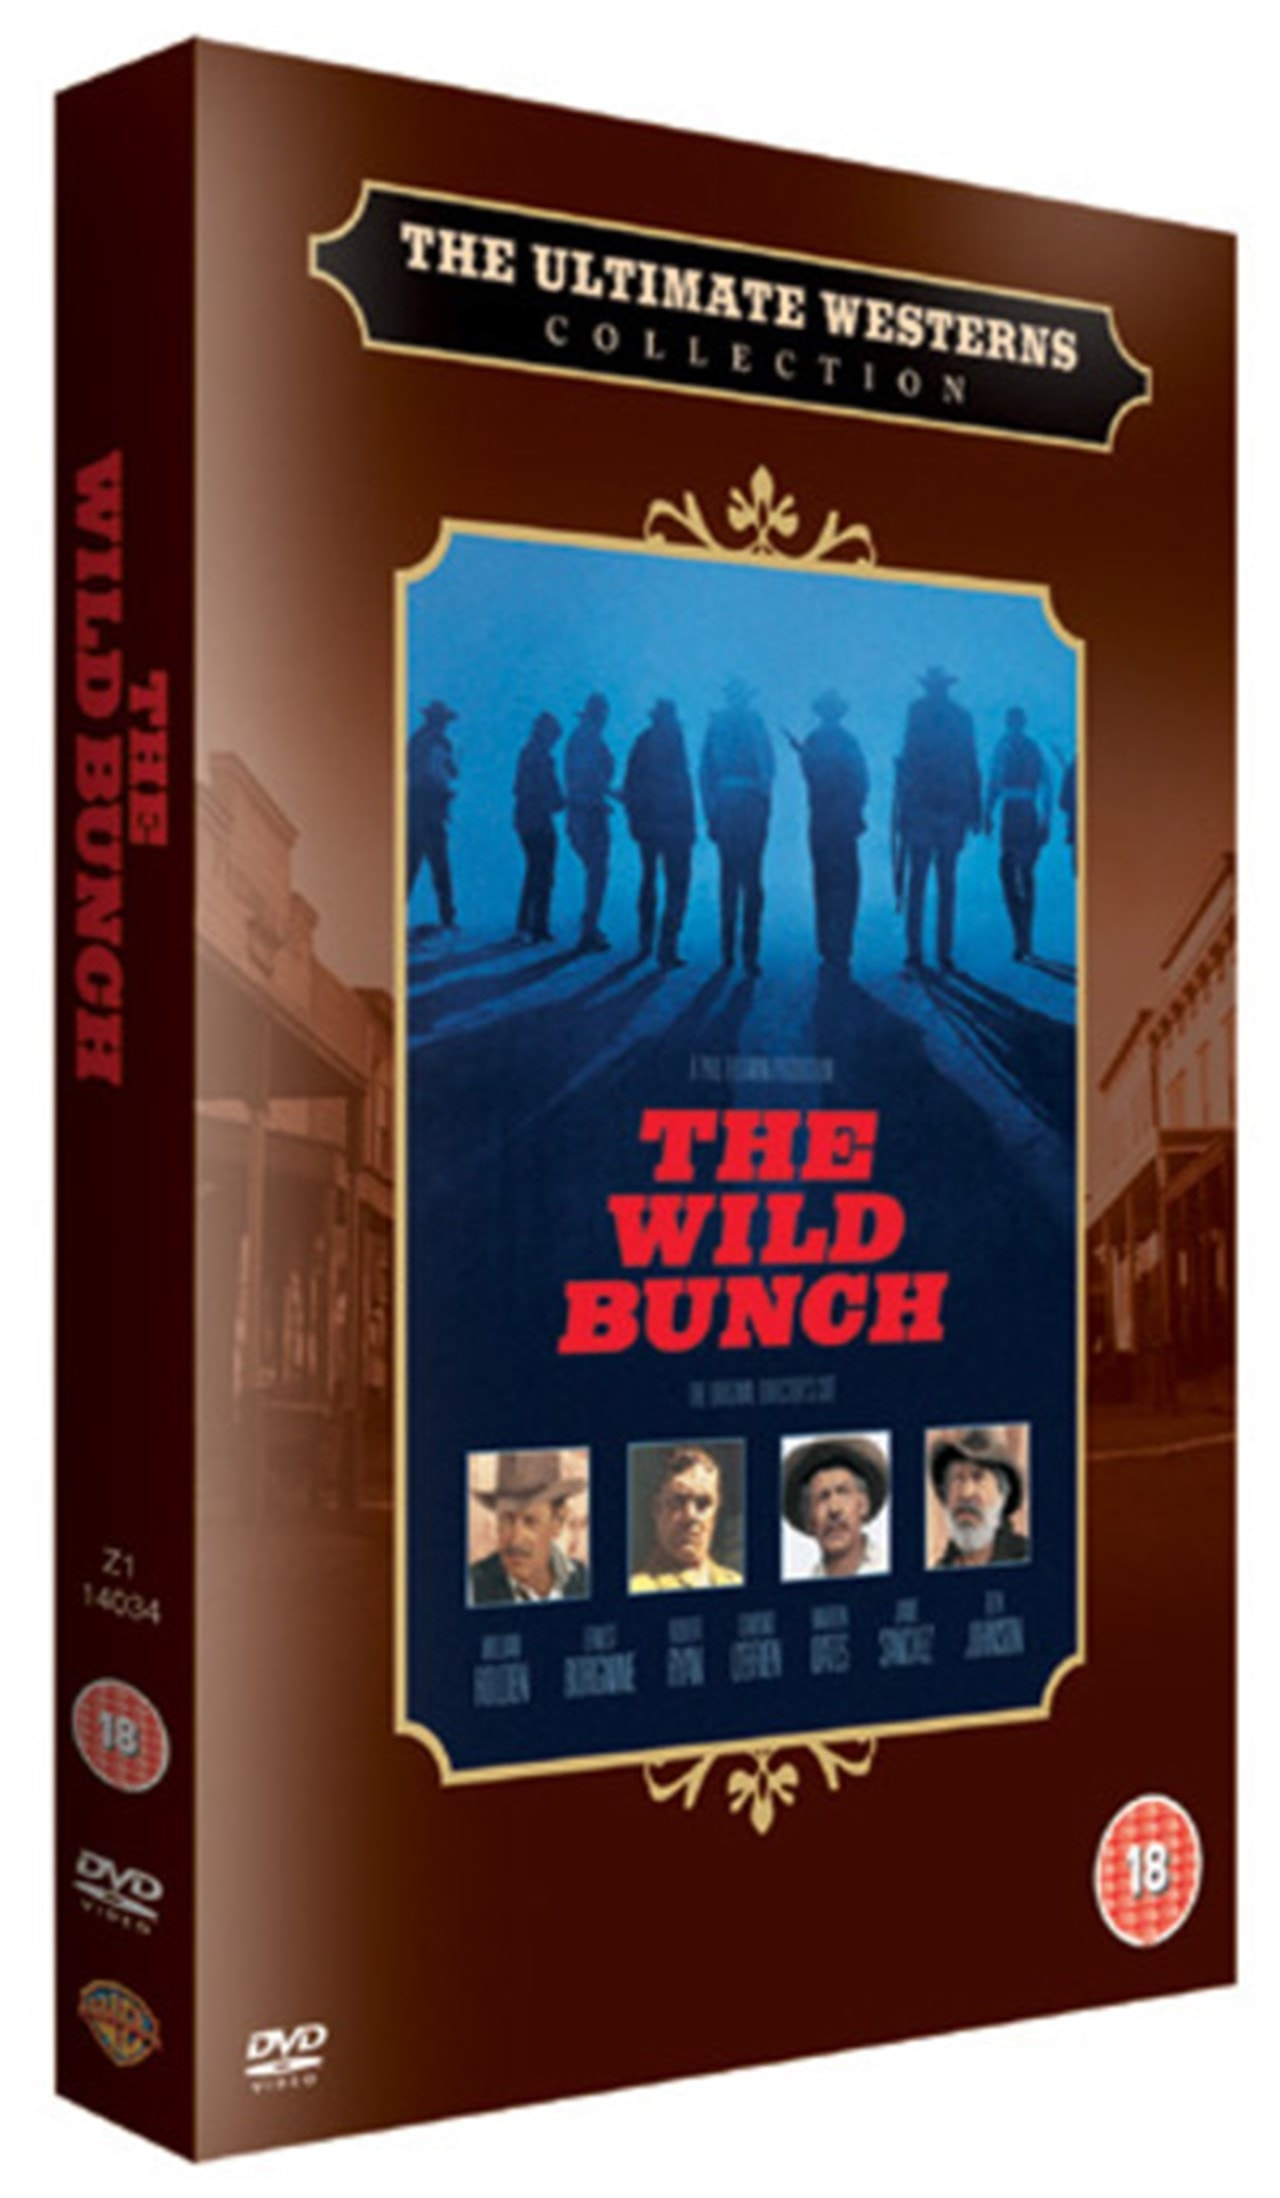 The Wild Bunch: Director's Cut - 1